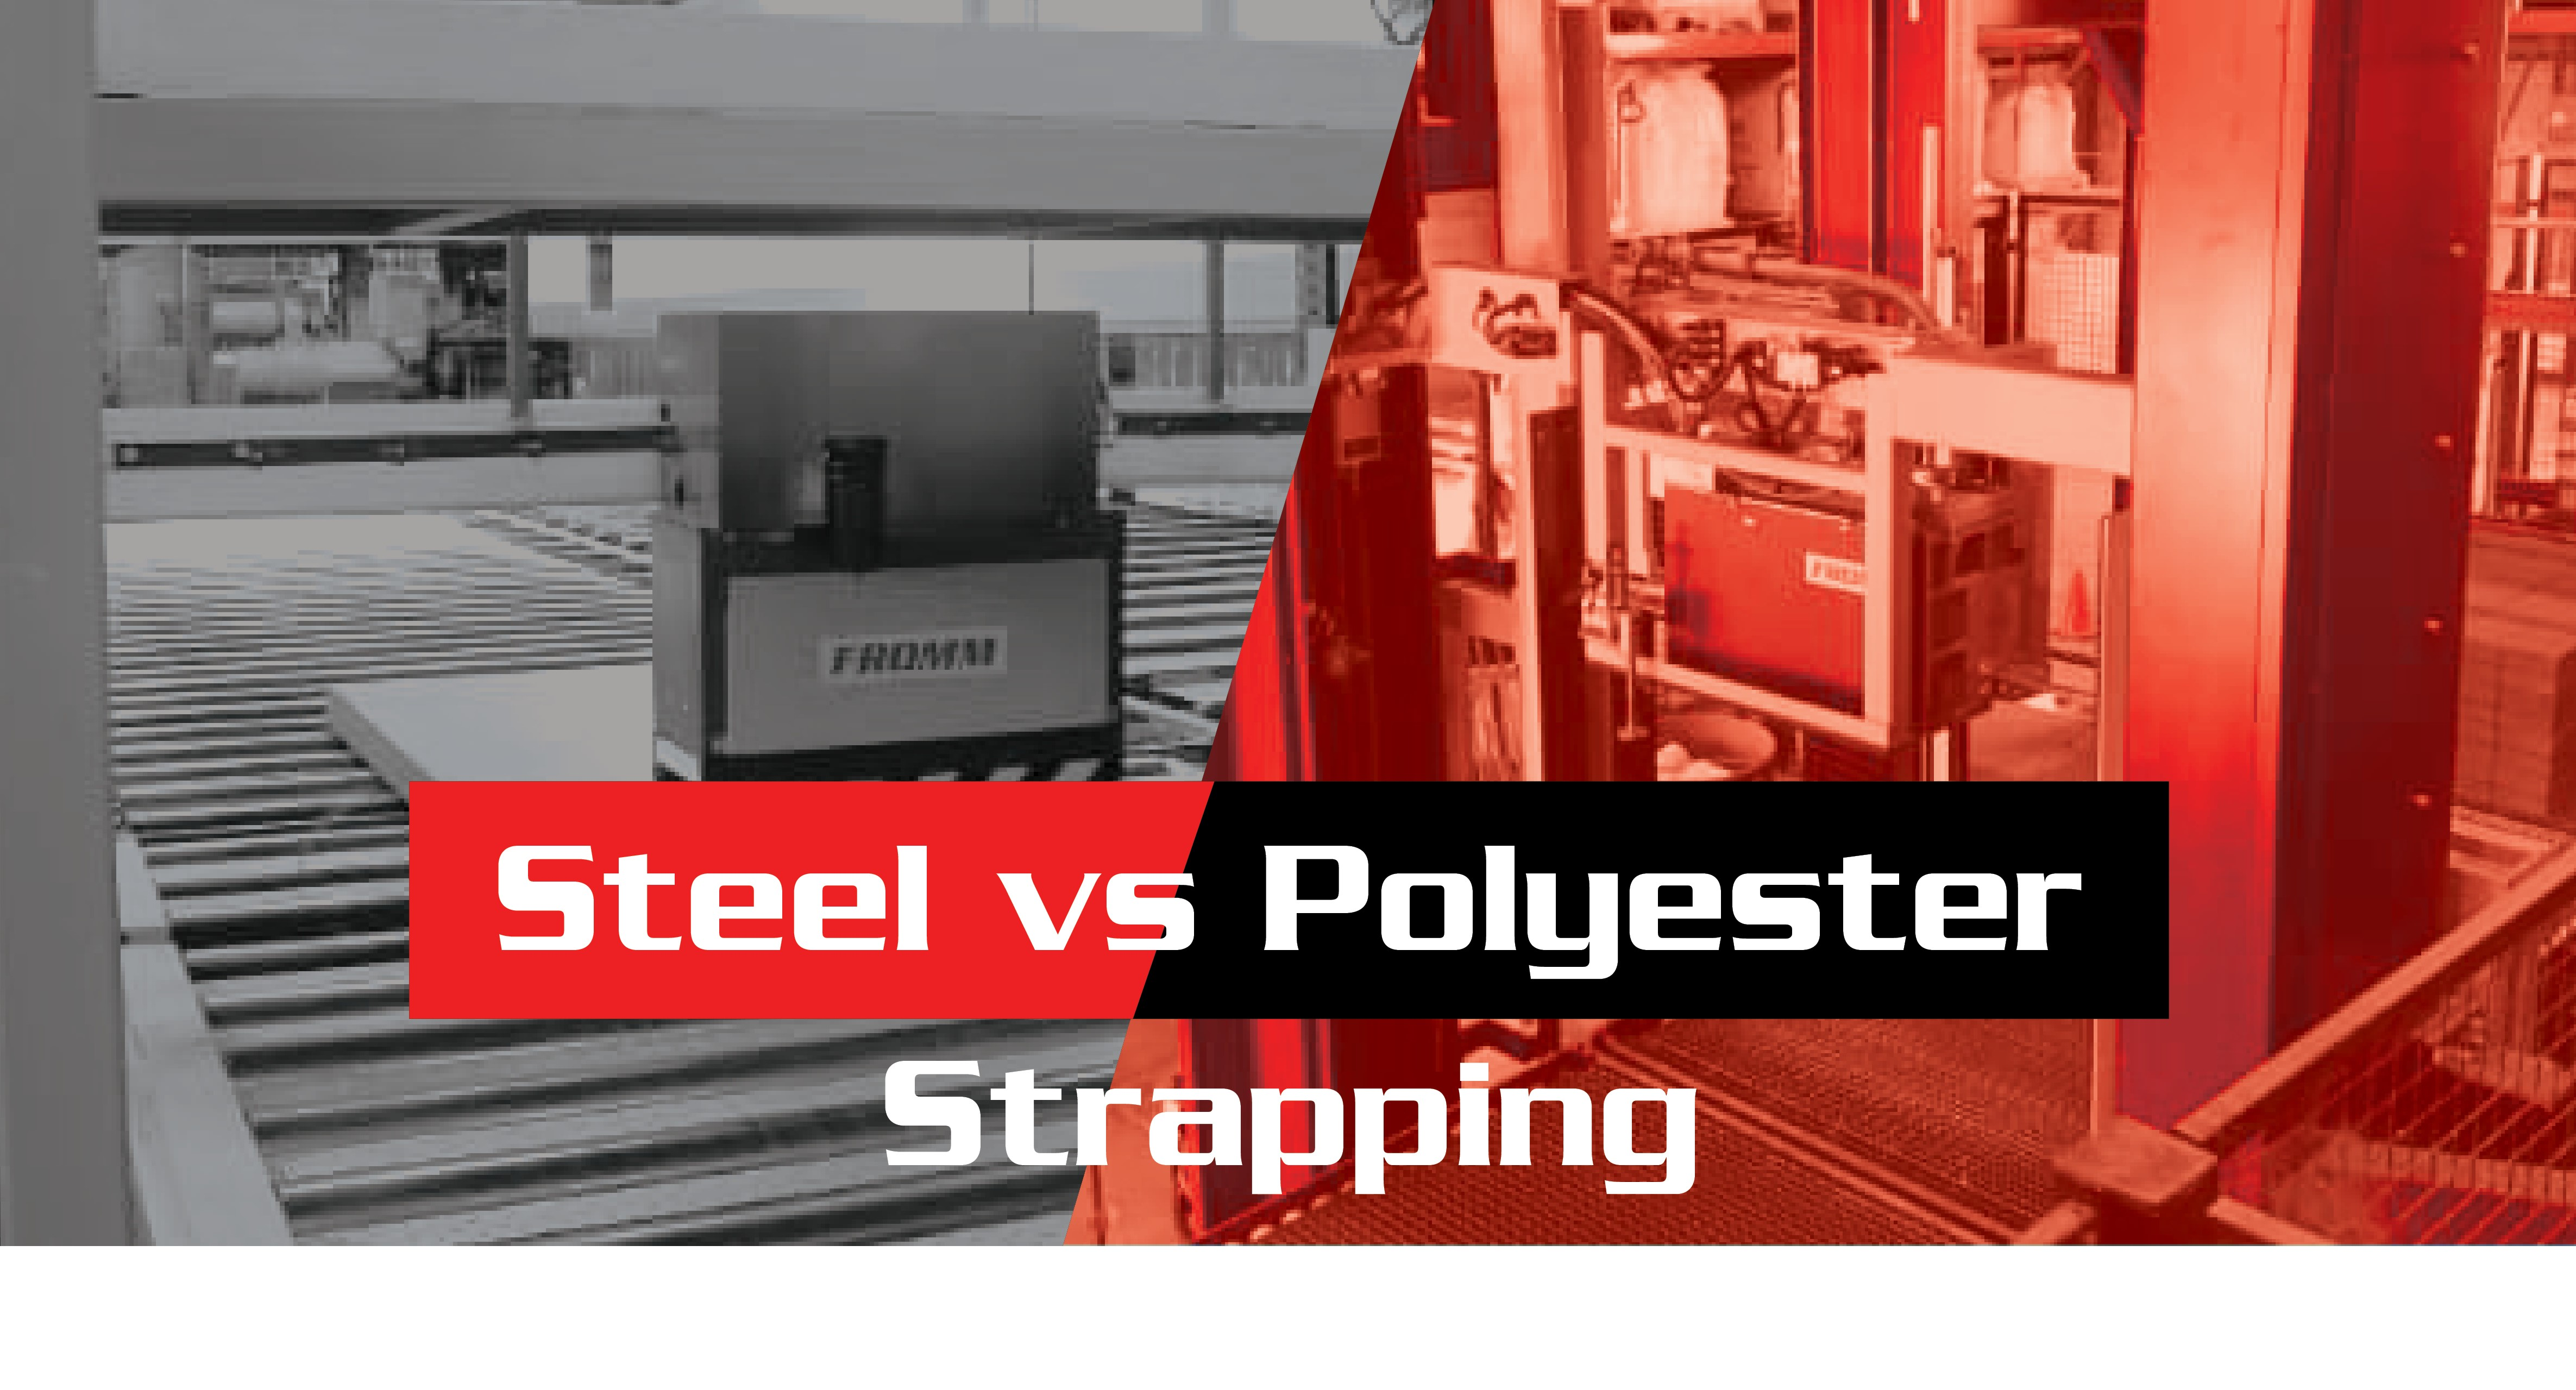 Fromm-Infographic-Steel-vs-Polyester- featuredStrapping